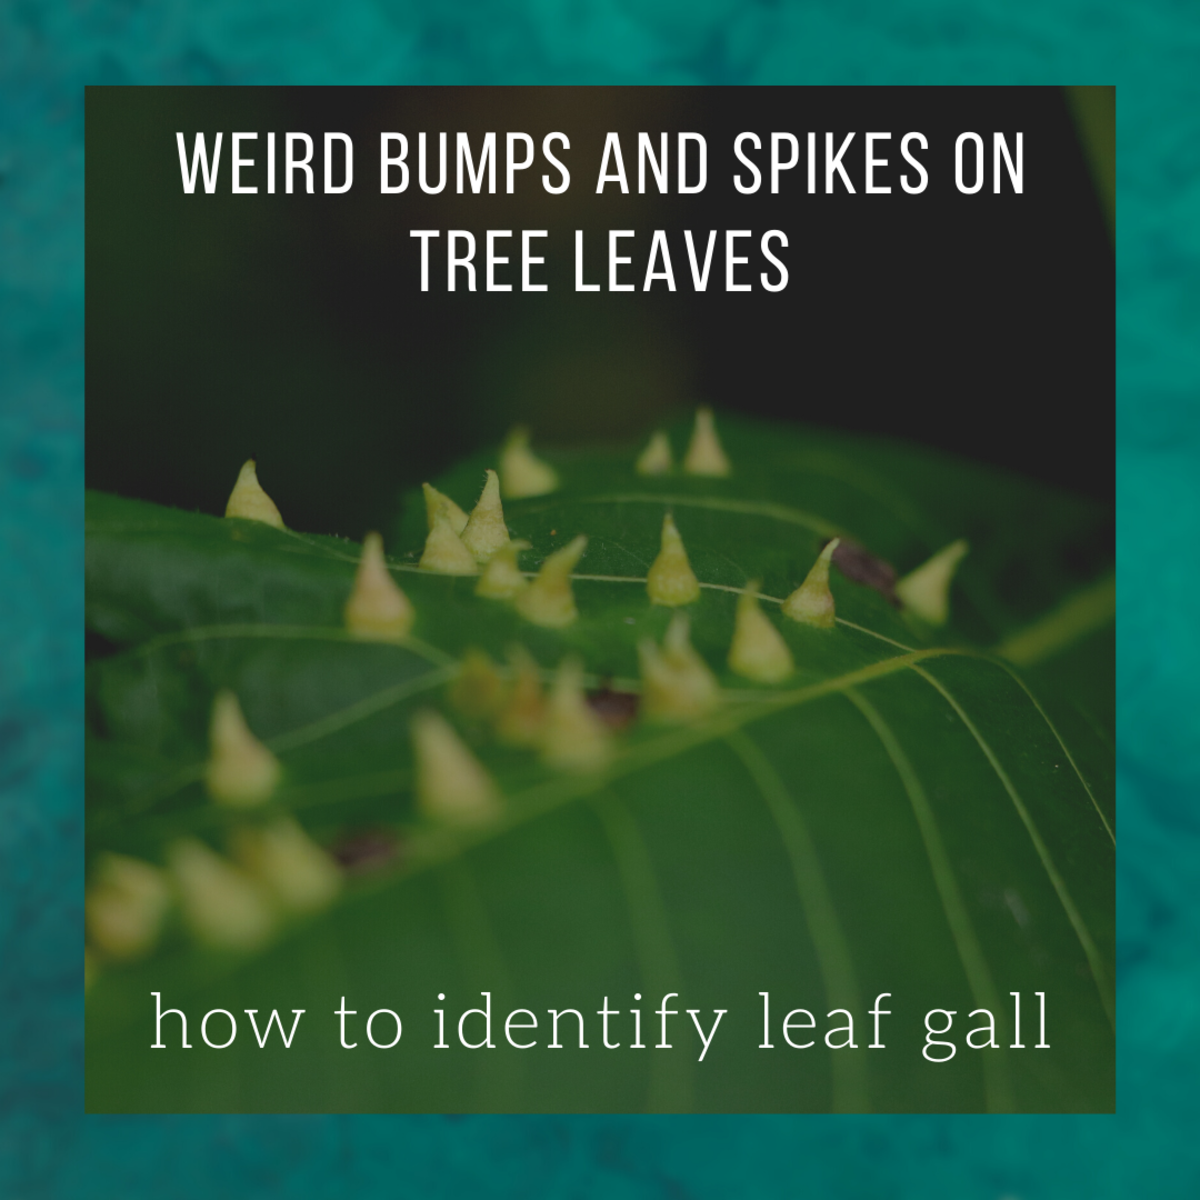 Leaf Galls: Ugly Bumps and Spikes on Tree Leaves